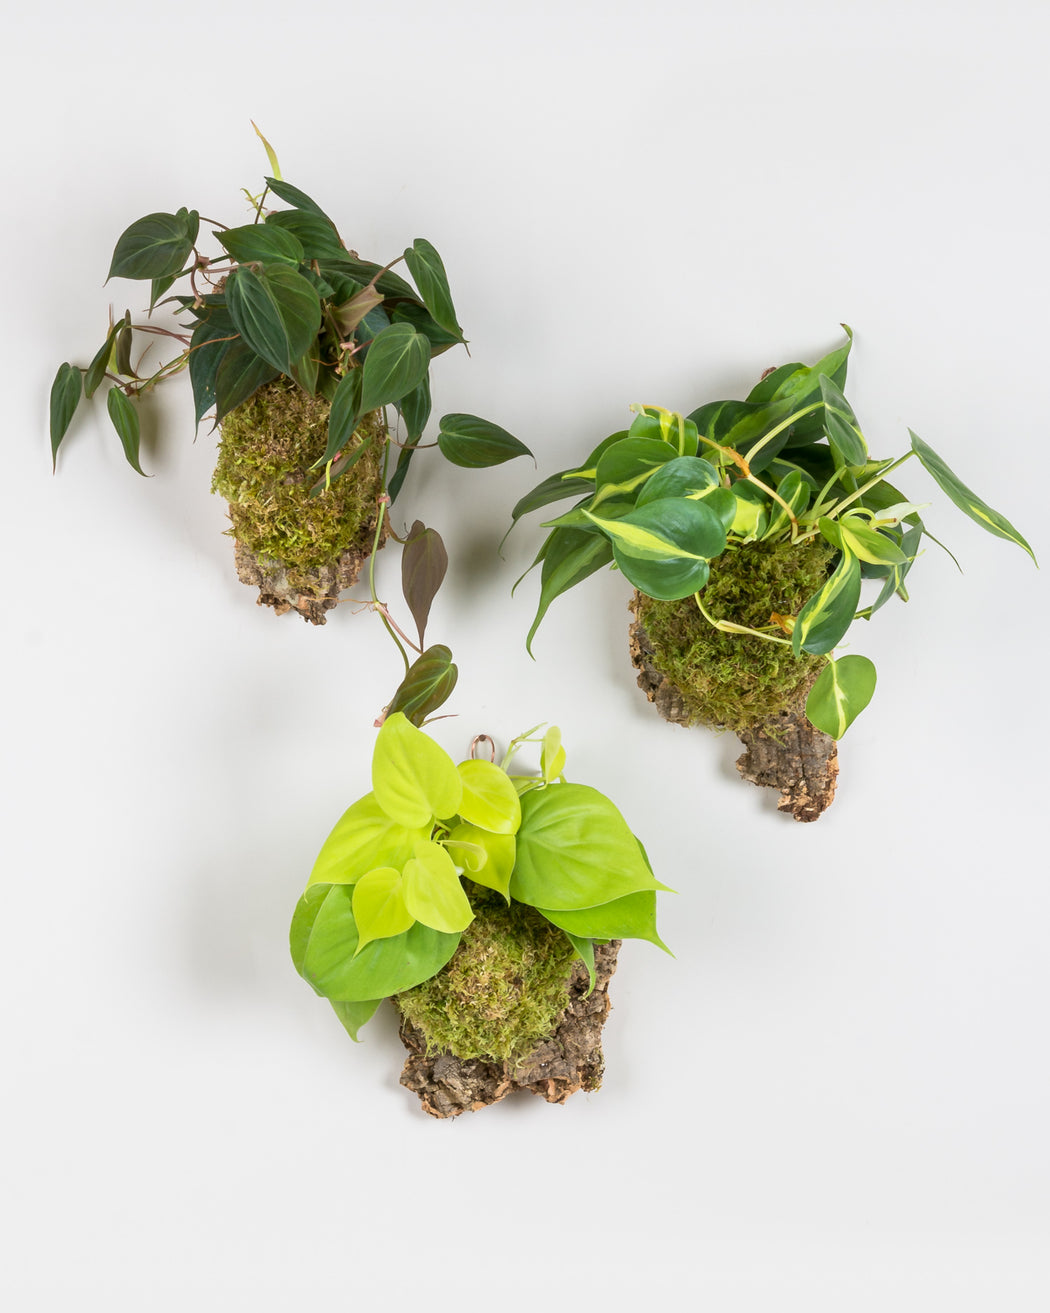 philodendron aroid green araceae trailing vining hanging wall décor decor natural variegated micans sphagnum cork moss